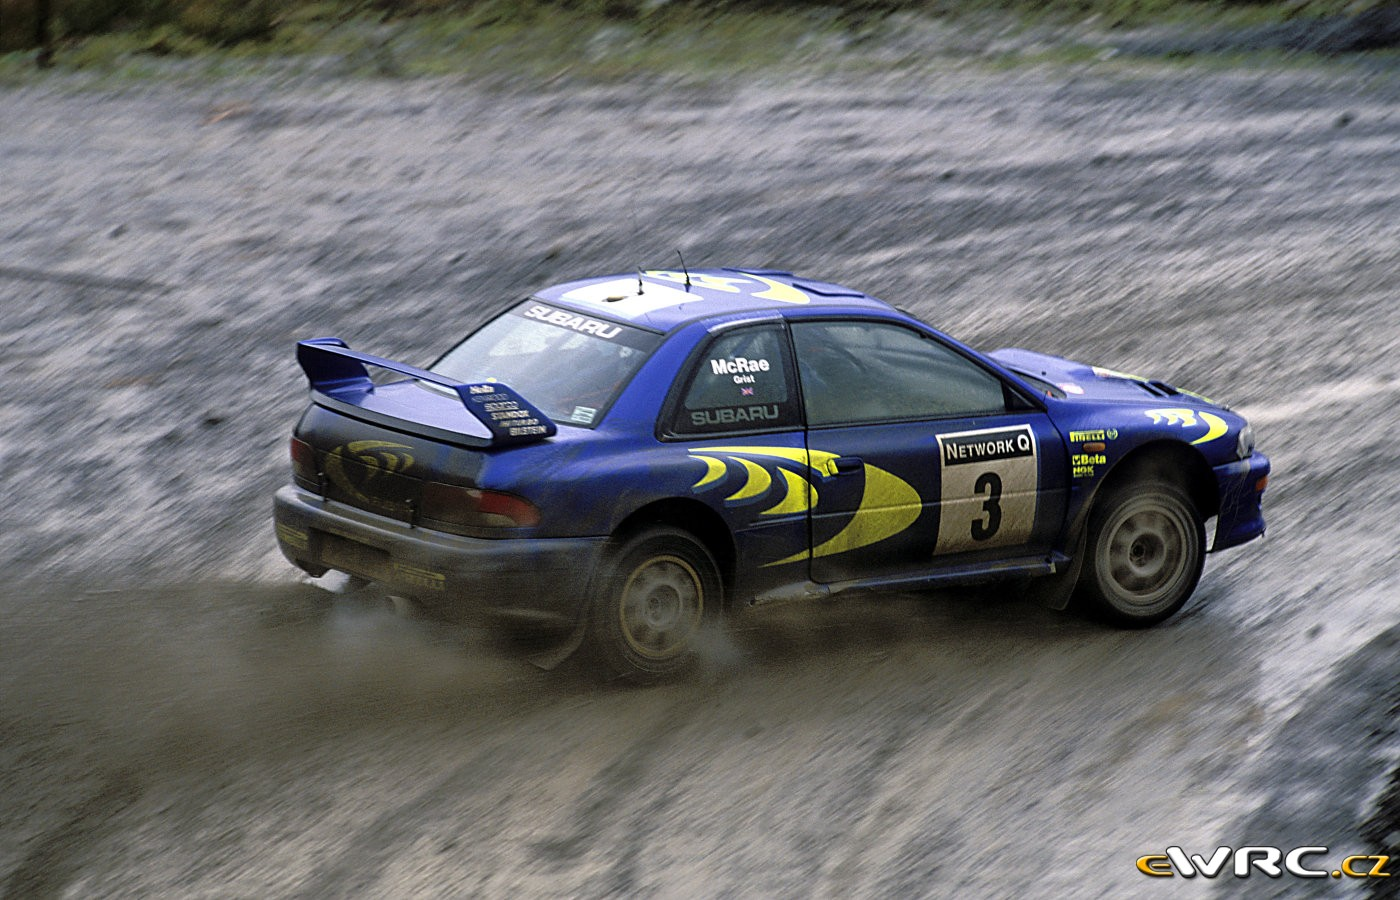 1997-14racrally-colinmcraenickygrist02